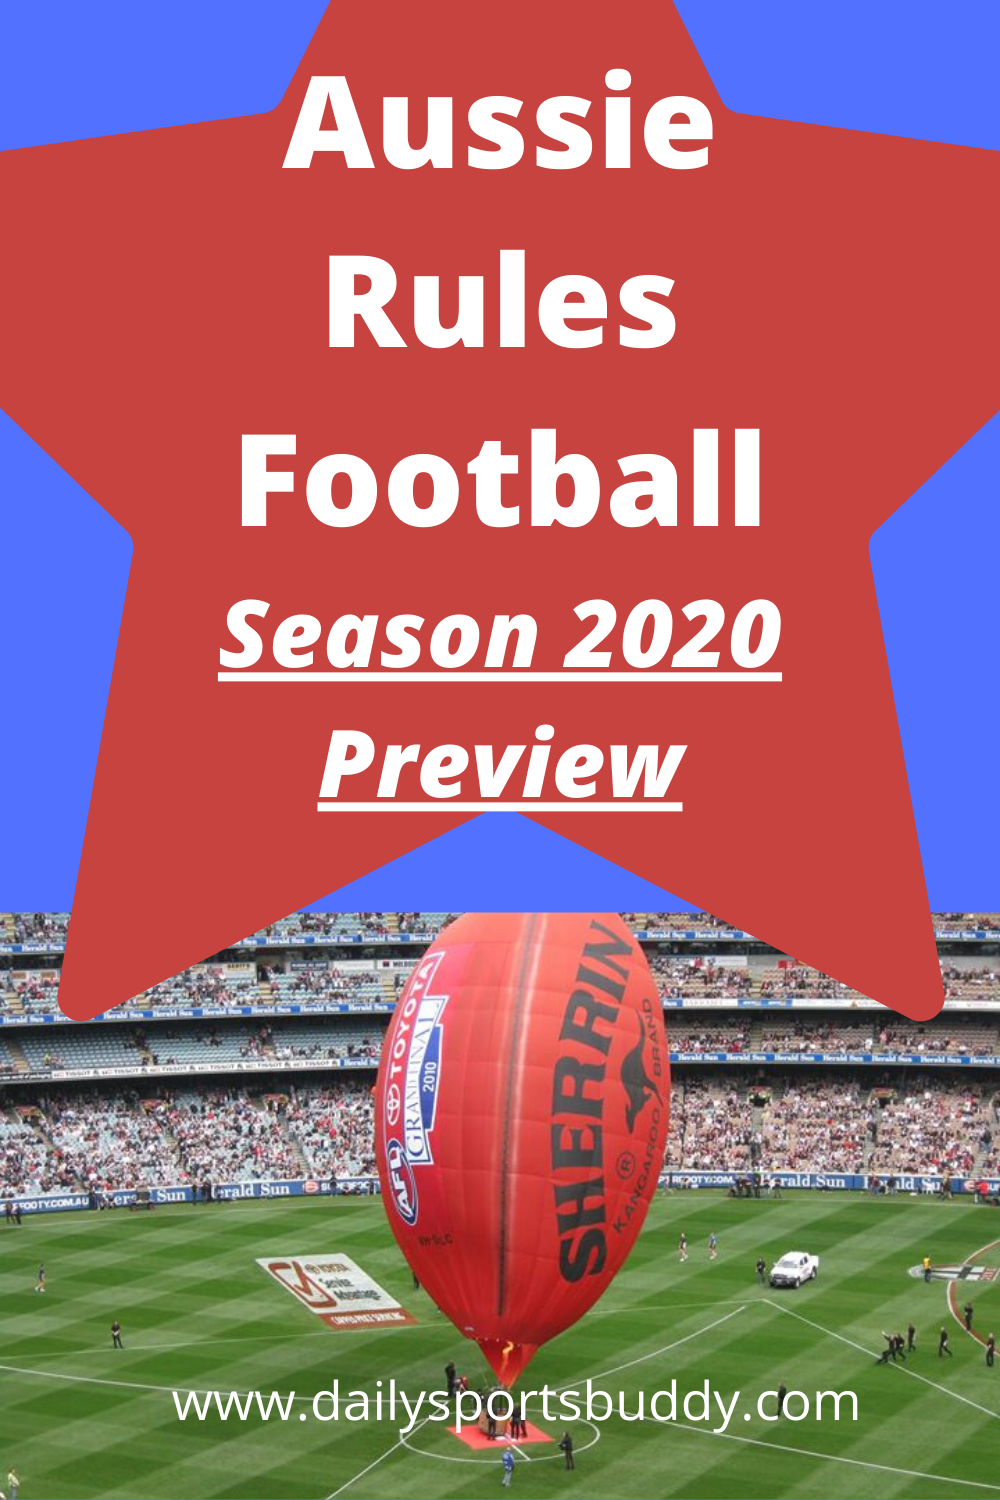 Aussie Rules Football Team Previews For Afl 2020 In 2020 Australian Football League Australian Football Football League